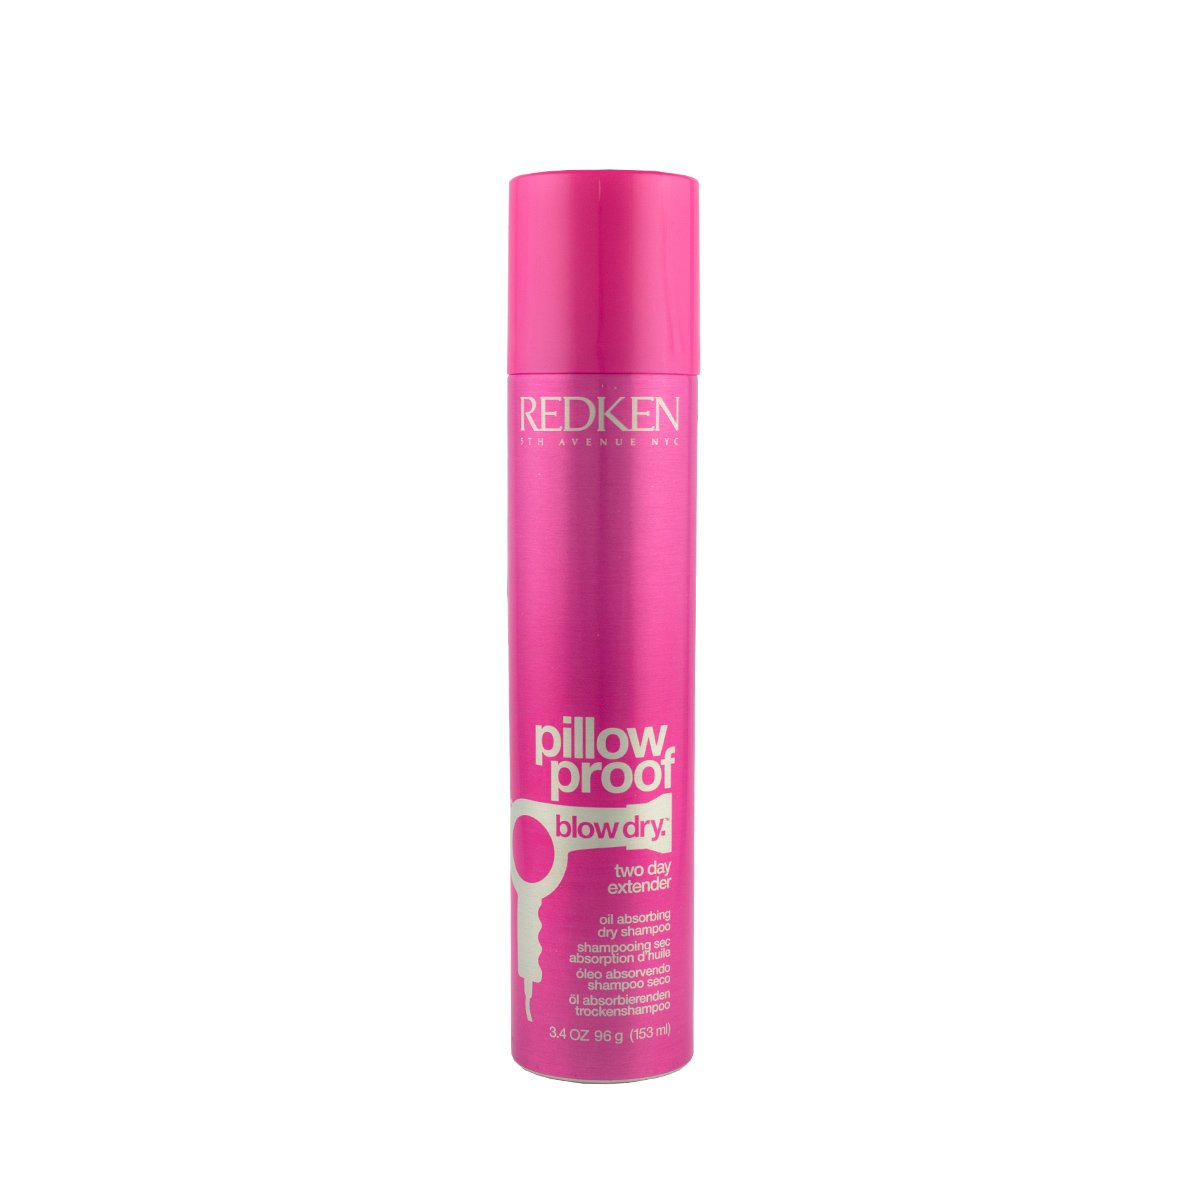 redken pillow proof dry shampoo